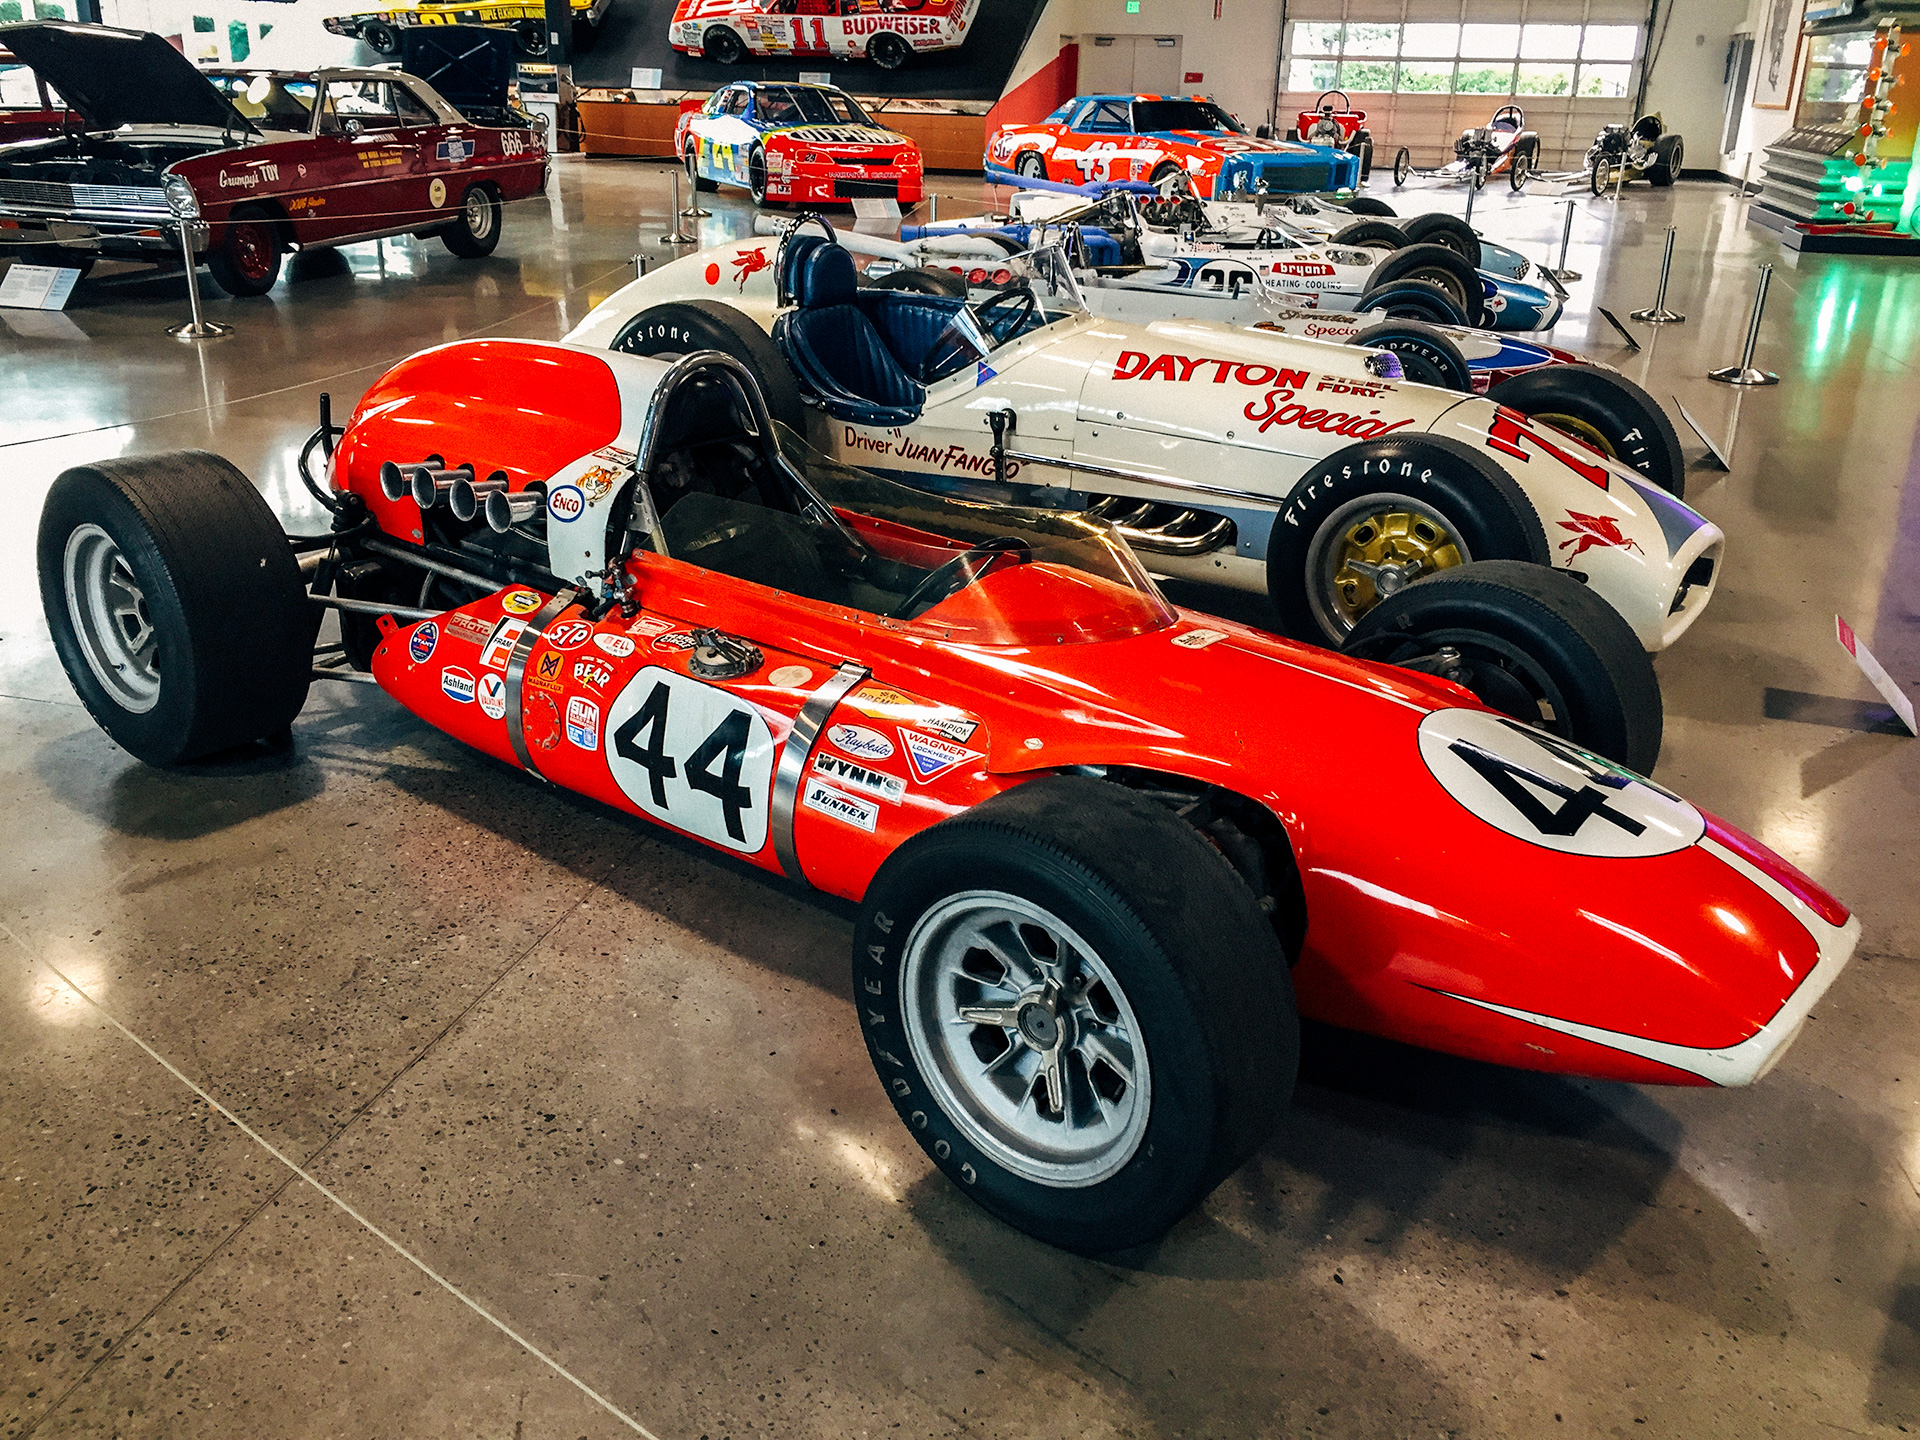 Collection of Indy 500 race cars from the 1950's at the World of Speed Museum